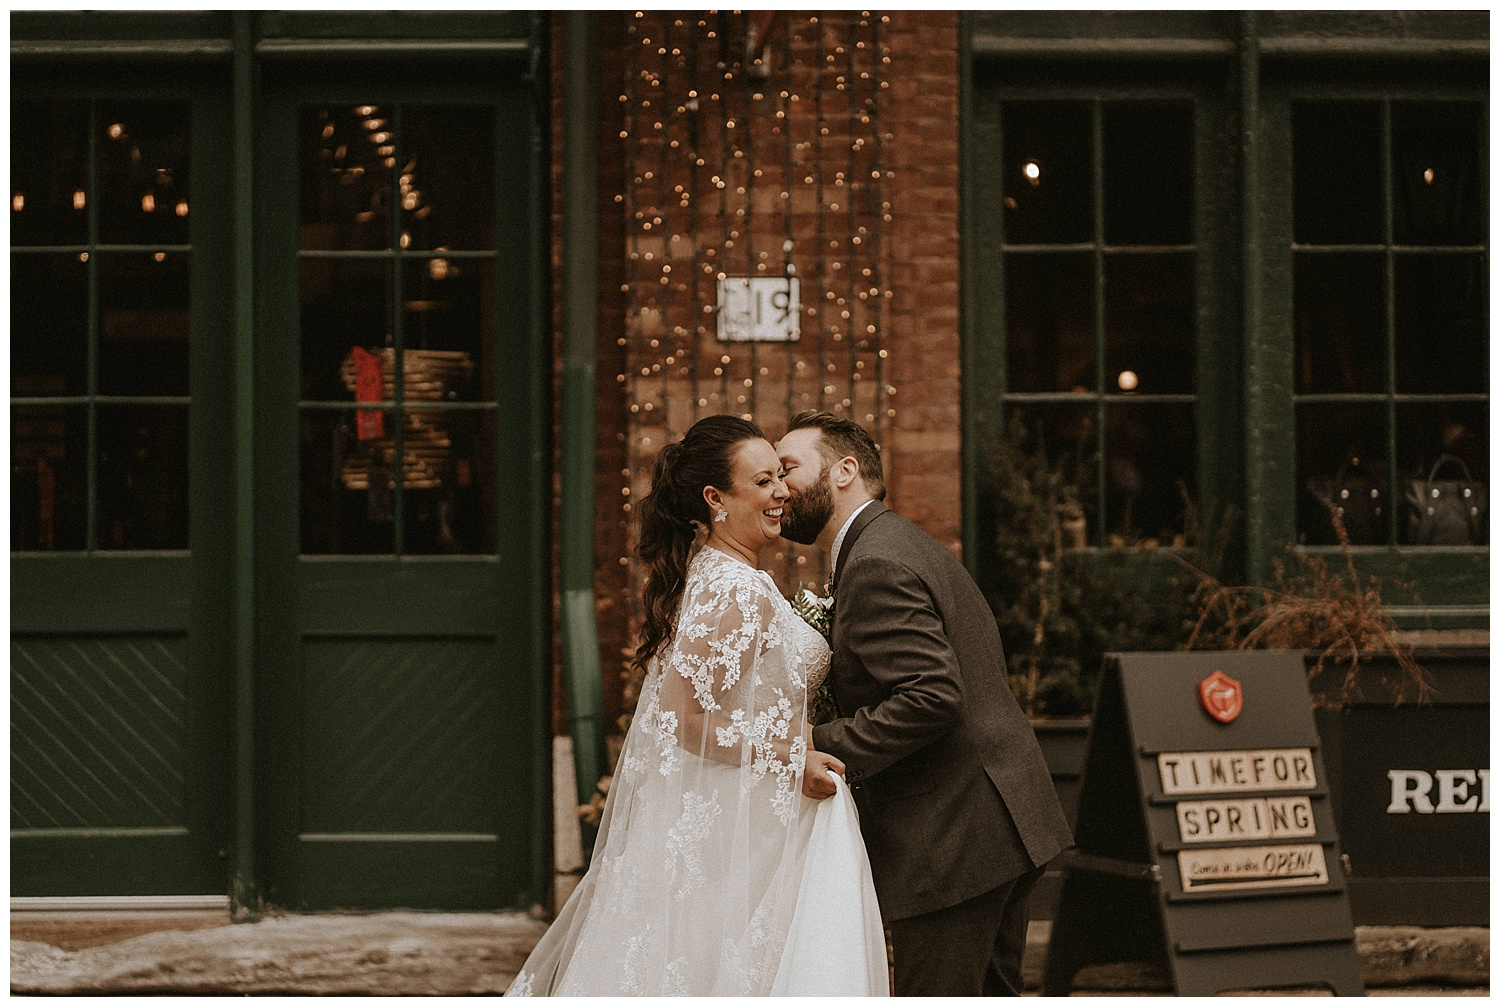 Katie Marie Photography | Archeo Wedding Arta Gallery Wedding | Distillery District Wedding | Toronto Wedding Photographer | Hamilton Toronto Ontario Wedding Photographer |_0072.jpg